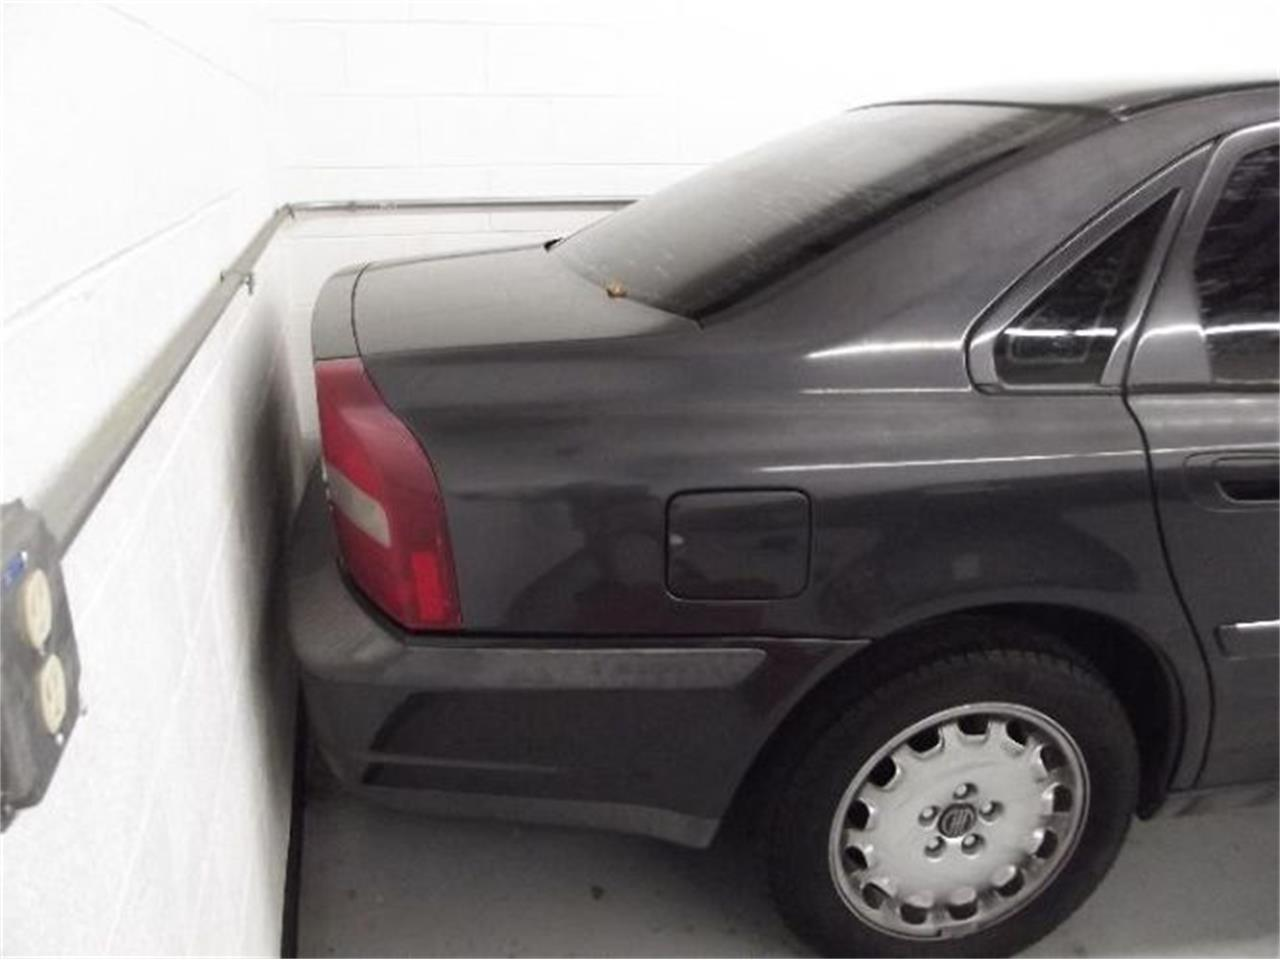 Large Picture of 2001 S80 located in Michigan - $13,395.00 Offered by Classic Car Deals - Q4A8